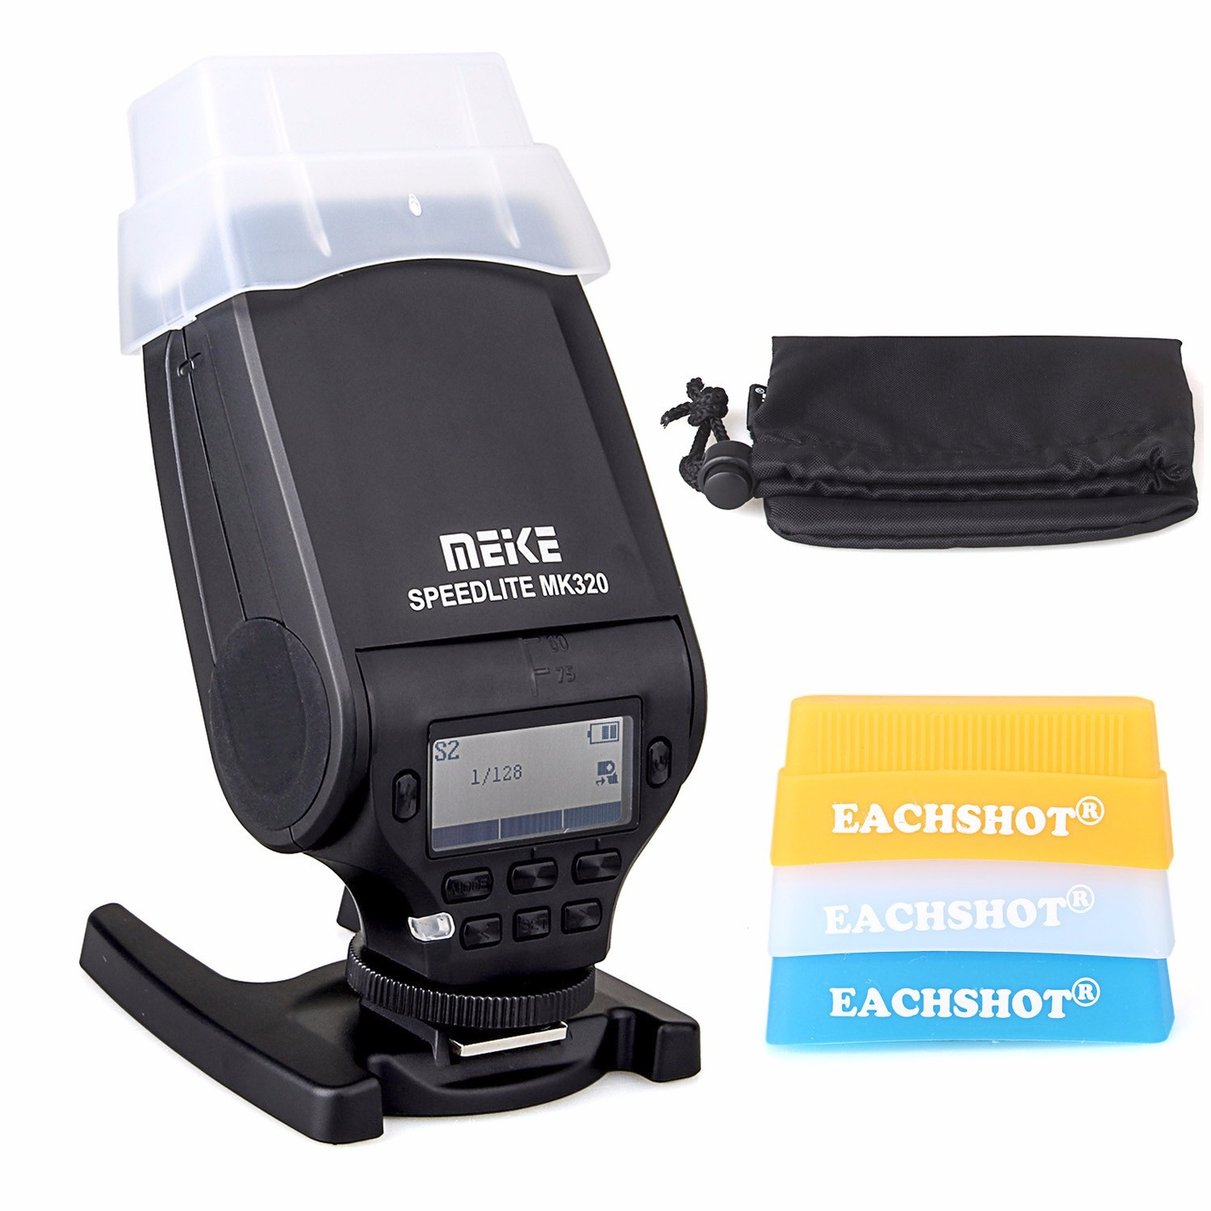 MEIKE MK-320 TTL Master HSS flash Speedlite for Canon EOS M M2 100D 5D II III 6D 7D 60D 70D 600D 7D mark II 700D 1100D T3i T2i 2017 new meike mk 930 ii flash speedlight speedlite for canon 6d eos 5d 5d2 5d mark iii ii as yongnuo yn 560 yn560 ii yn560ii